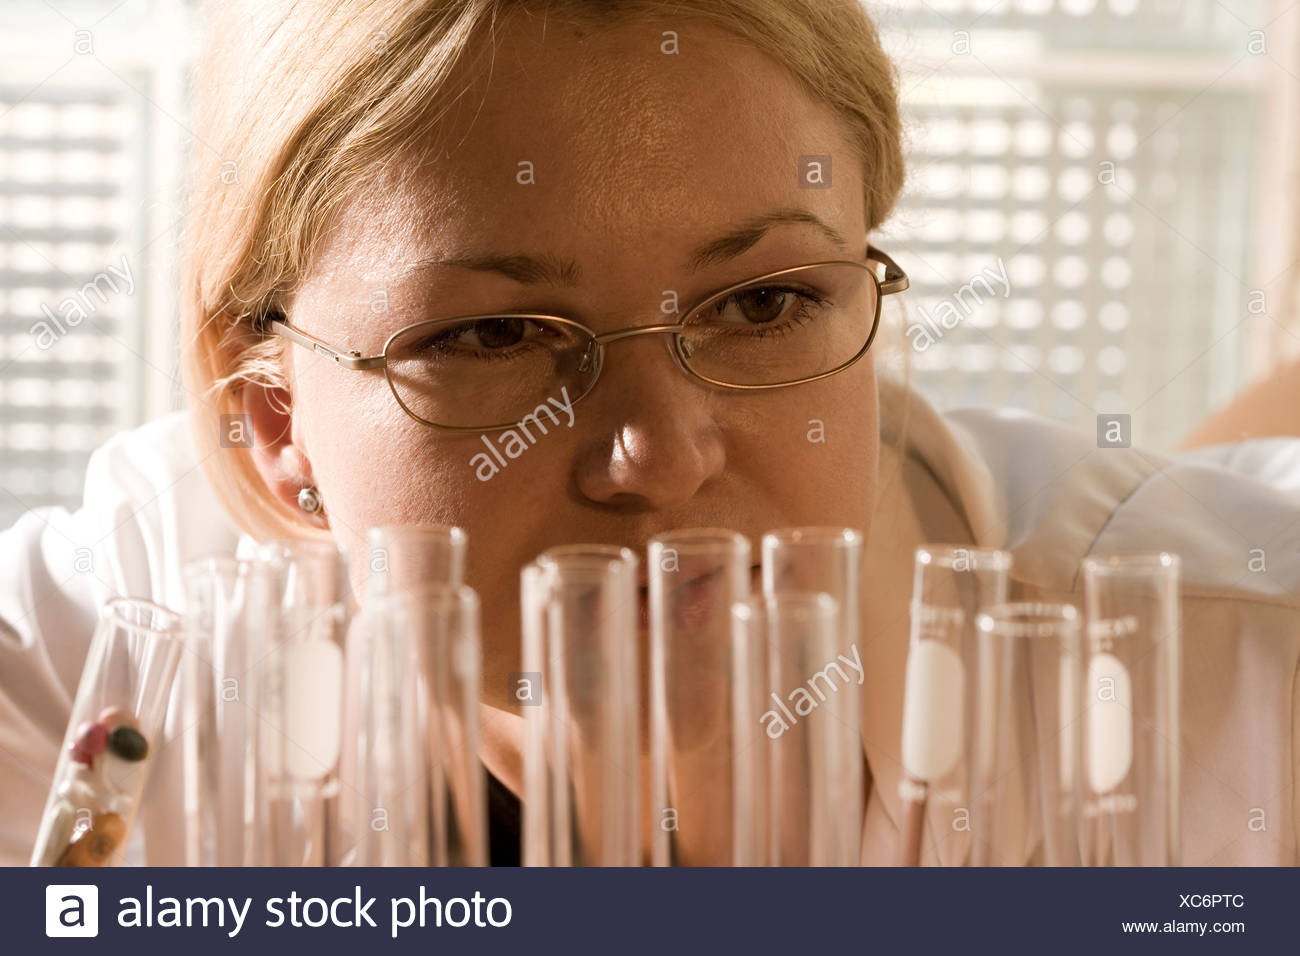 Researcher attempting to discover the cure to save lives or save the environment. - Stock Image